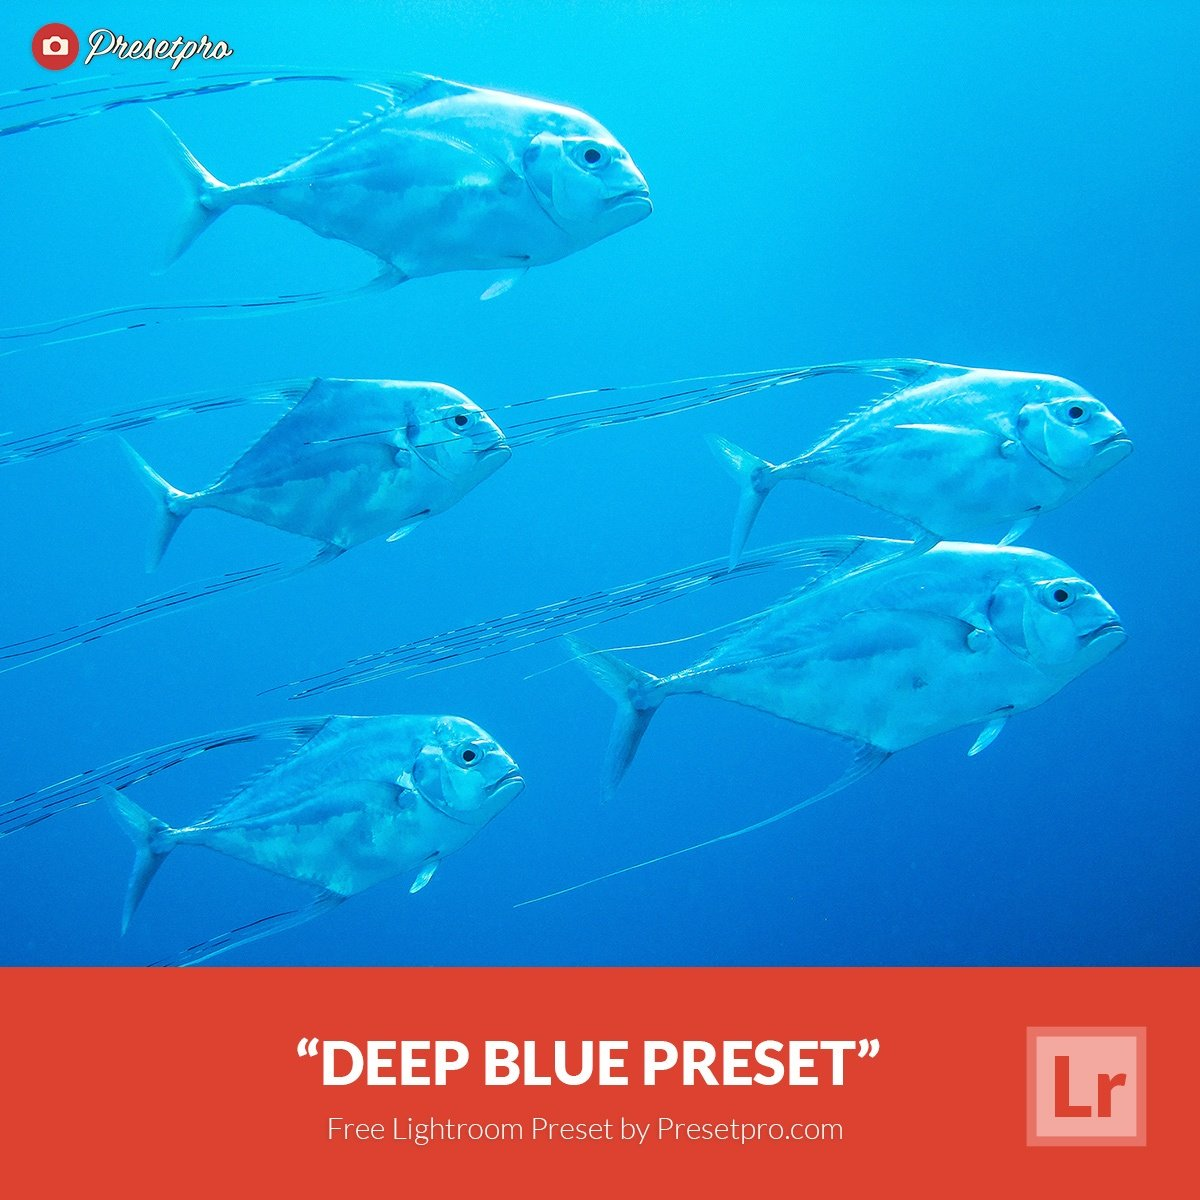 Free-Lightroom-Preset-Deep-Blue-Presetpro.com_